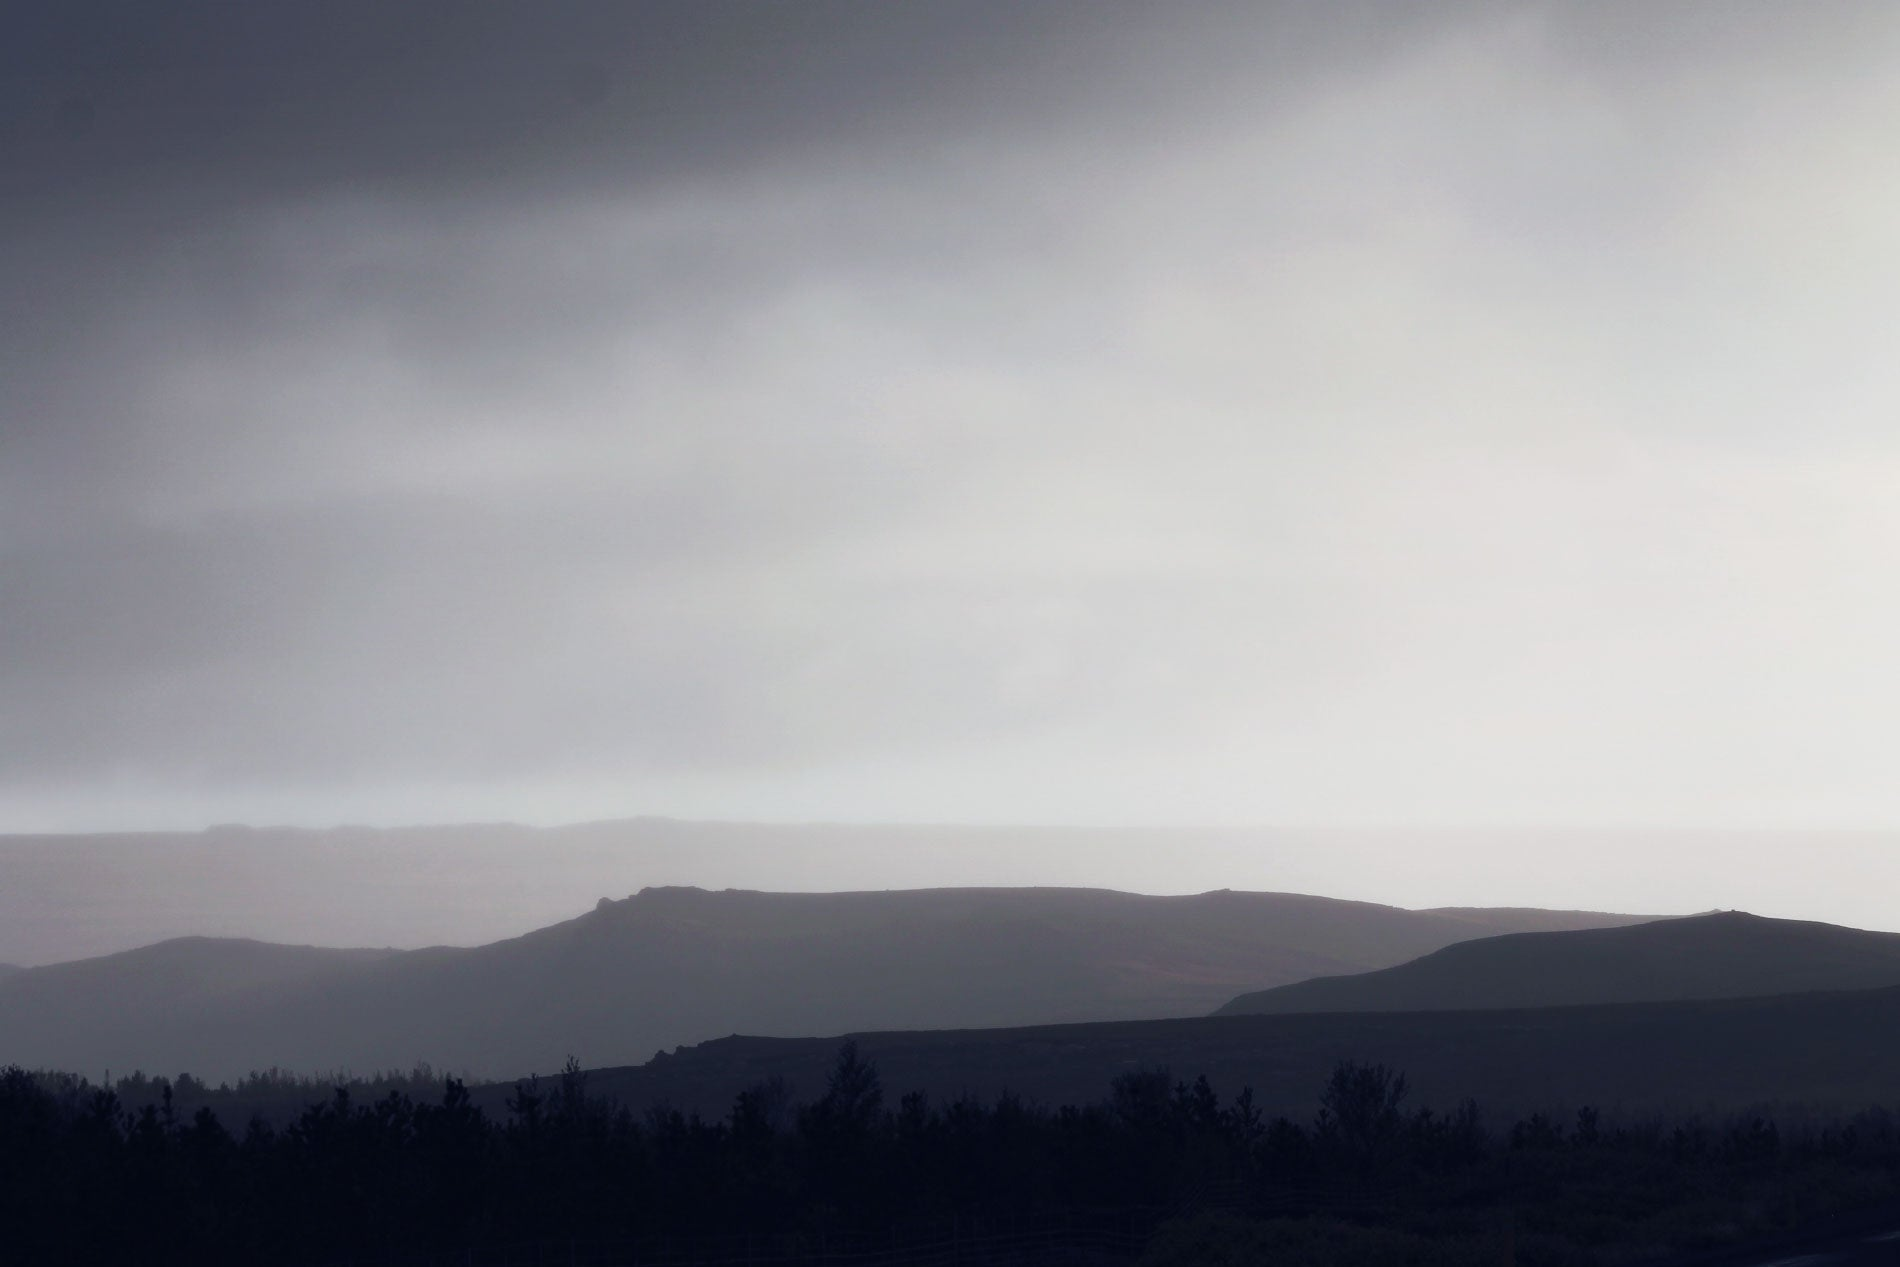 icelandic horizon with hills